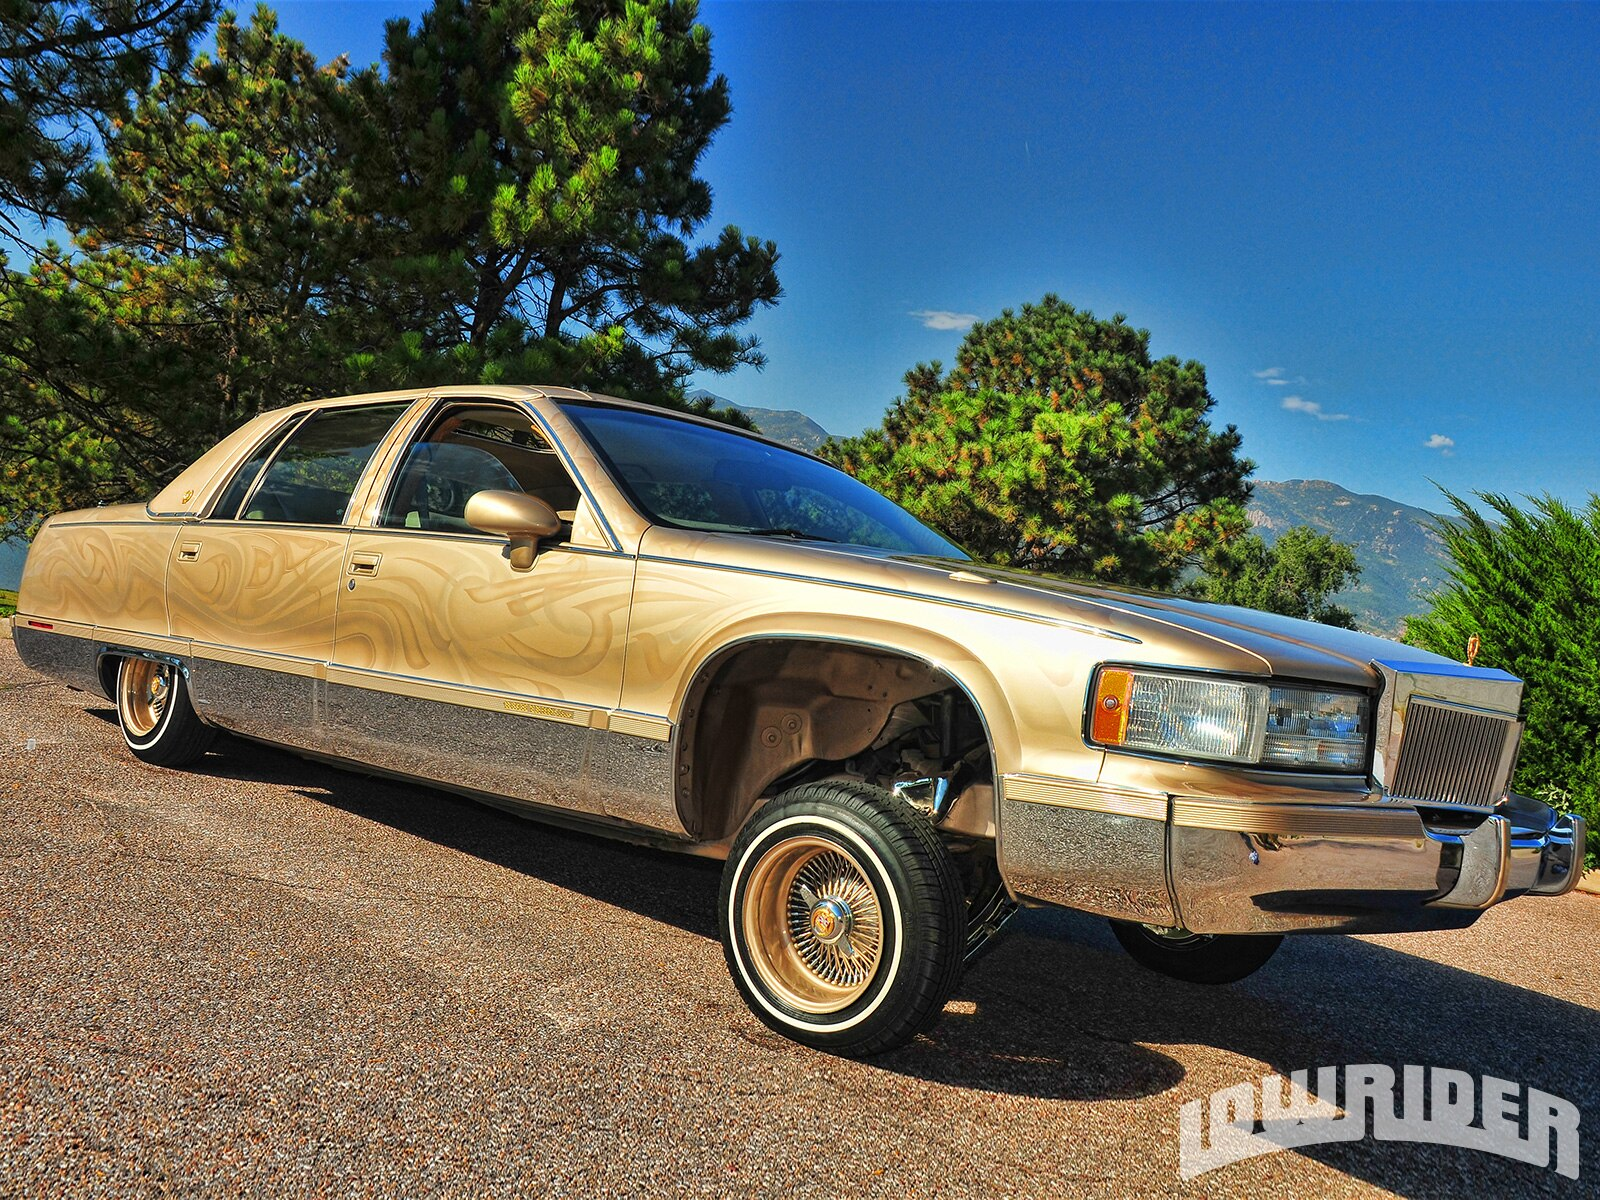 1993-cadillac-fleetwood-right-side-view1